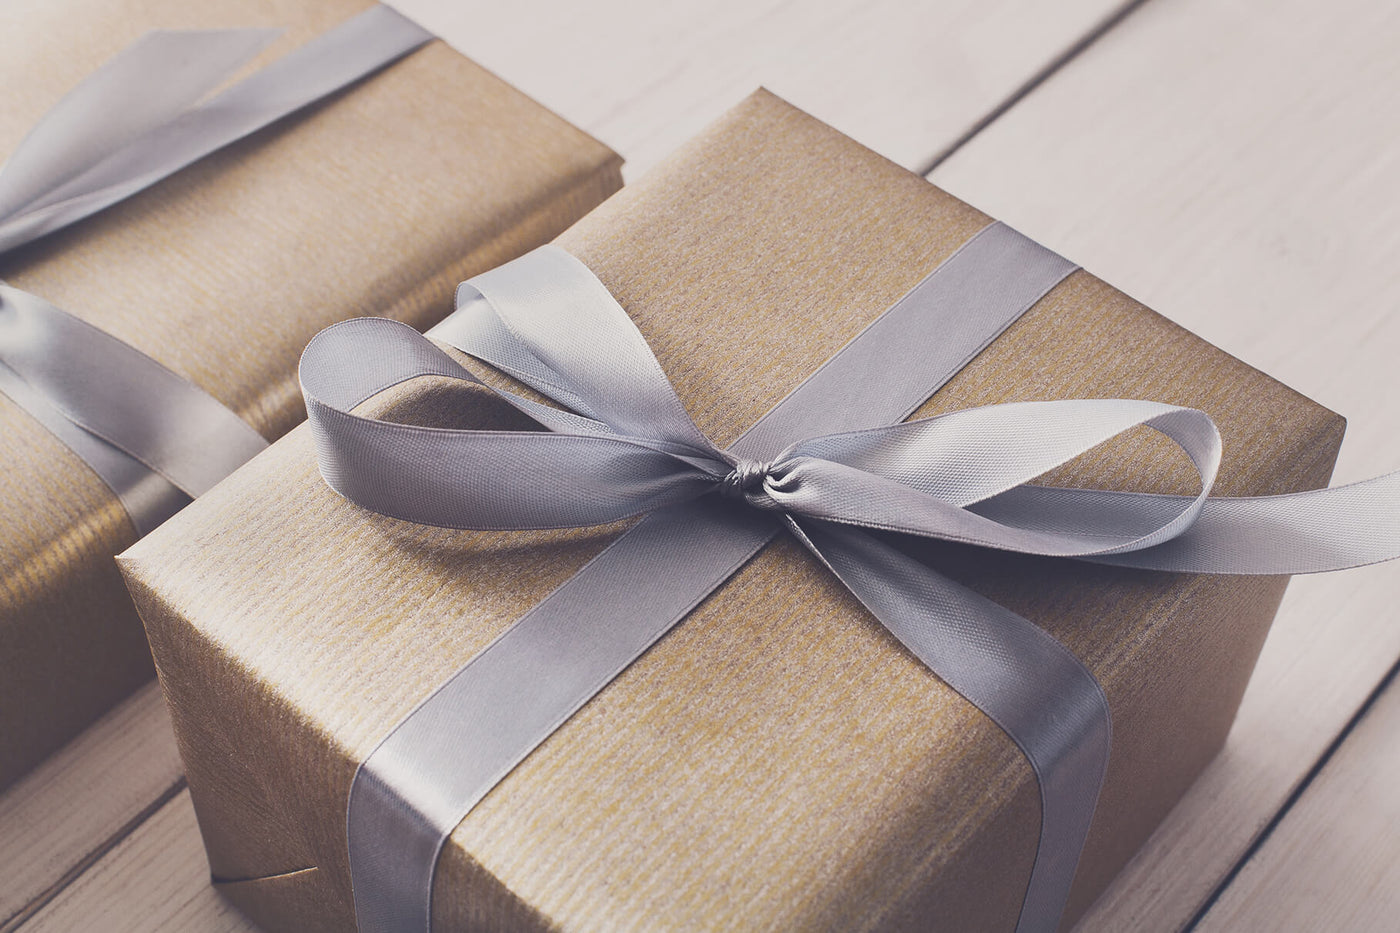 GIFT BASKET DELIVERY SERVICES CANADA